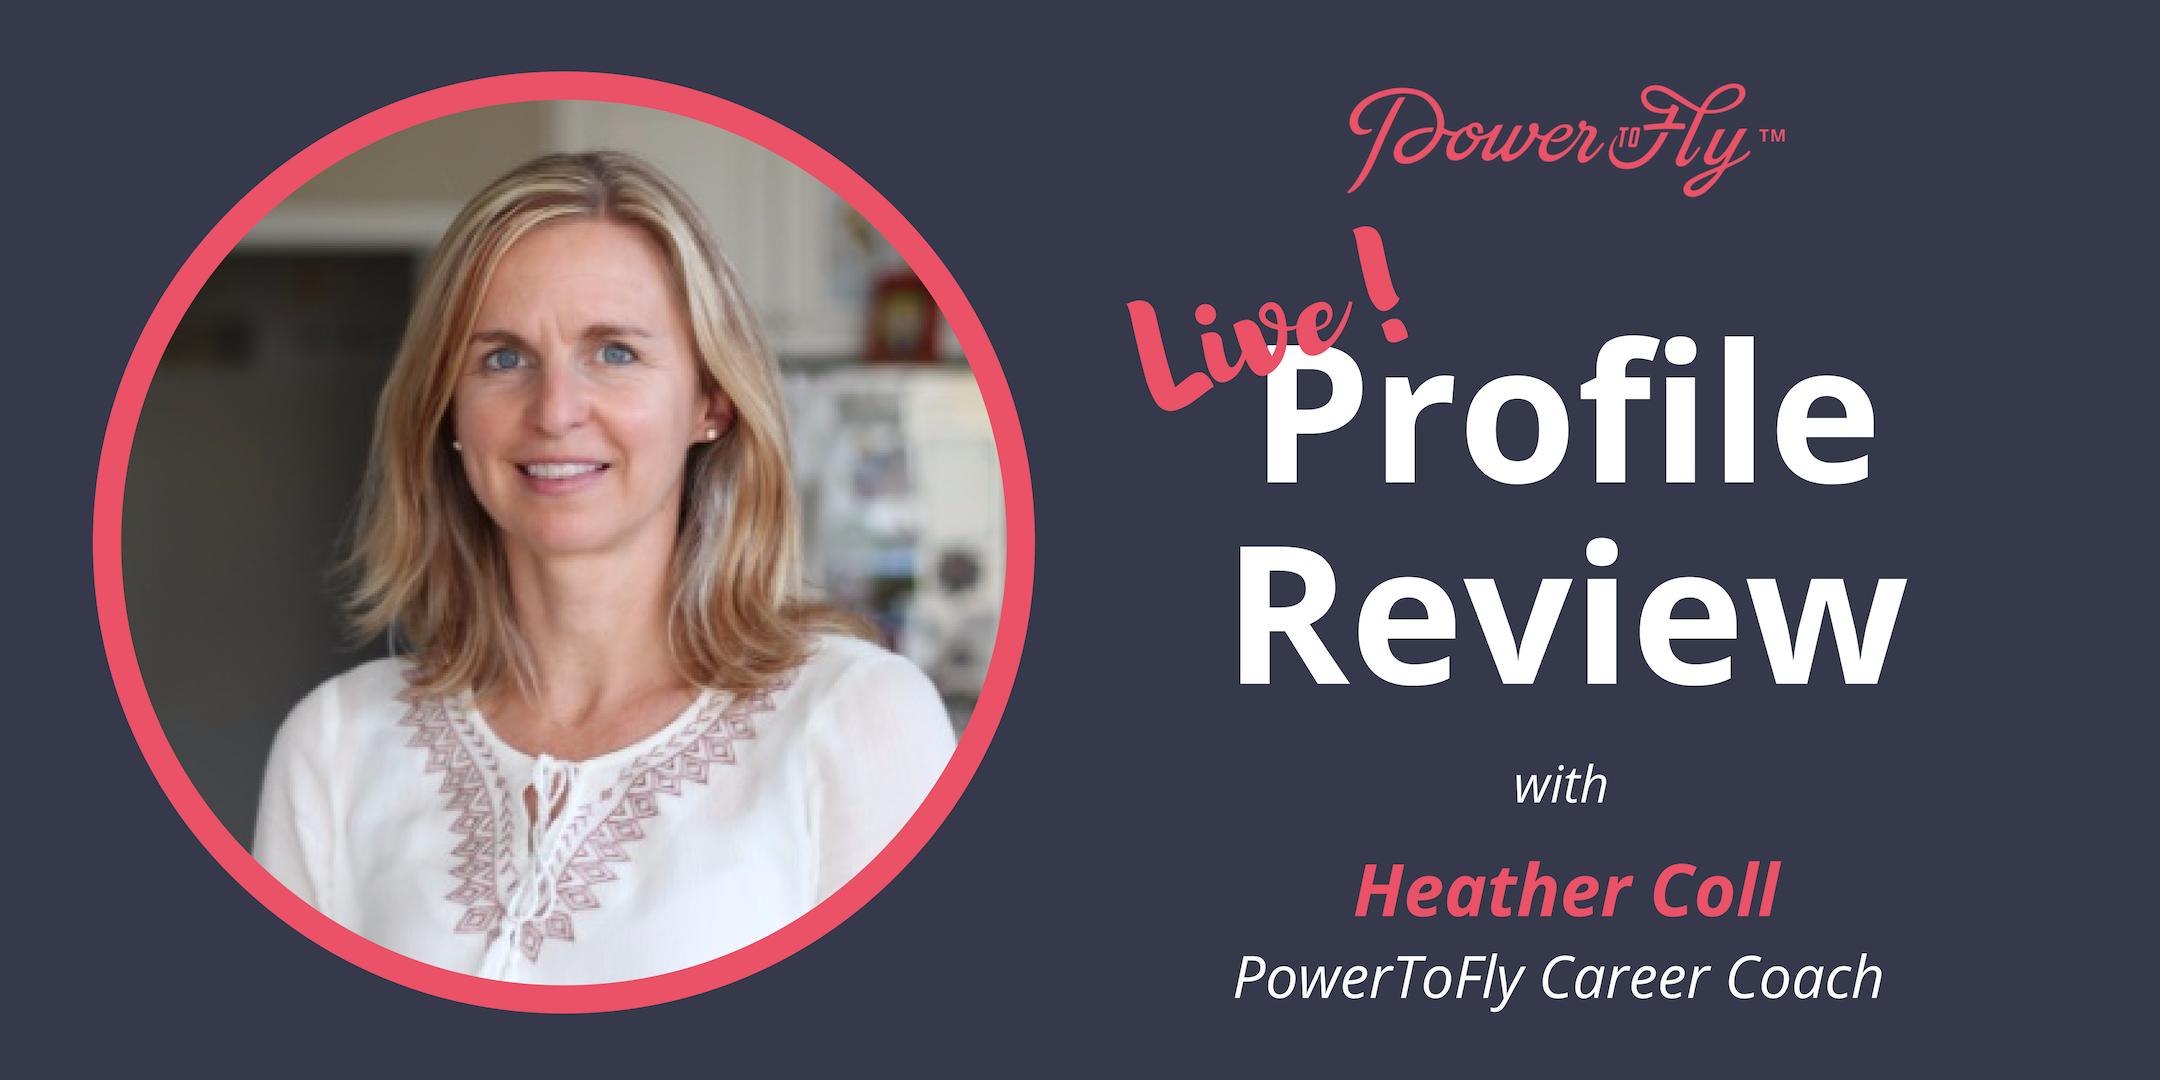 *LIVE* Profile Review With PowerToFly Career Coach 5/9